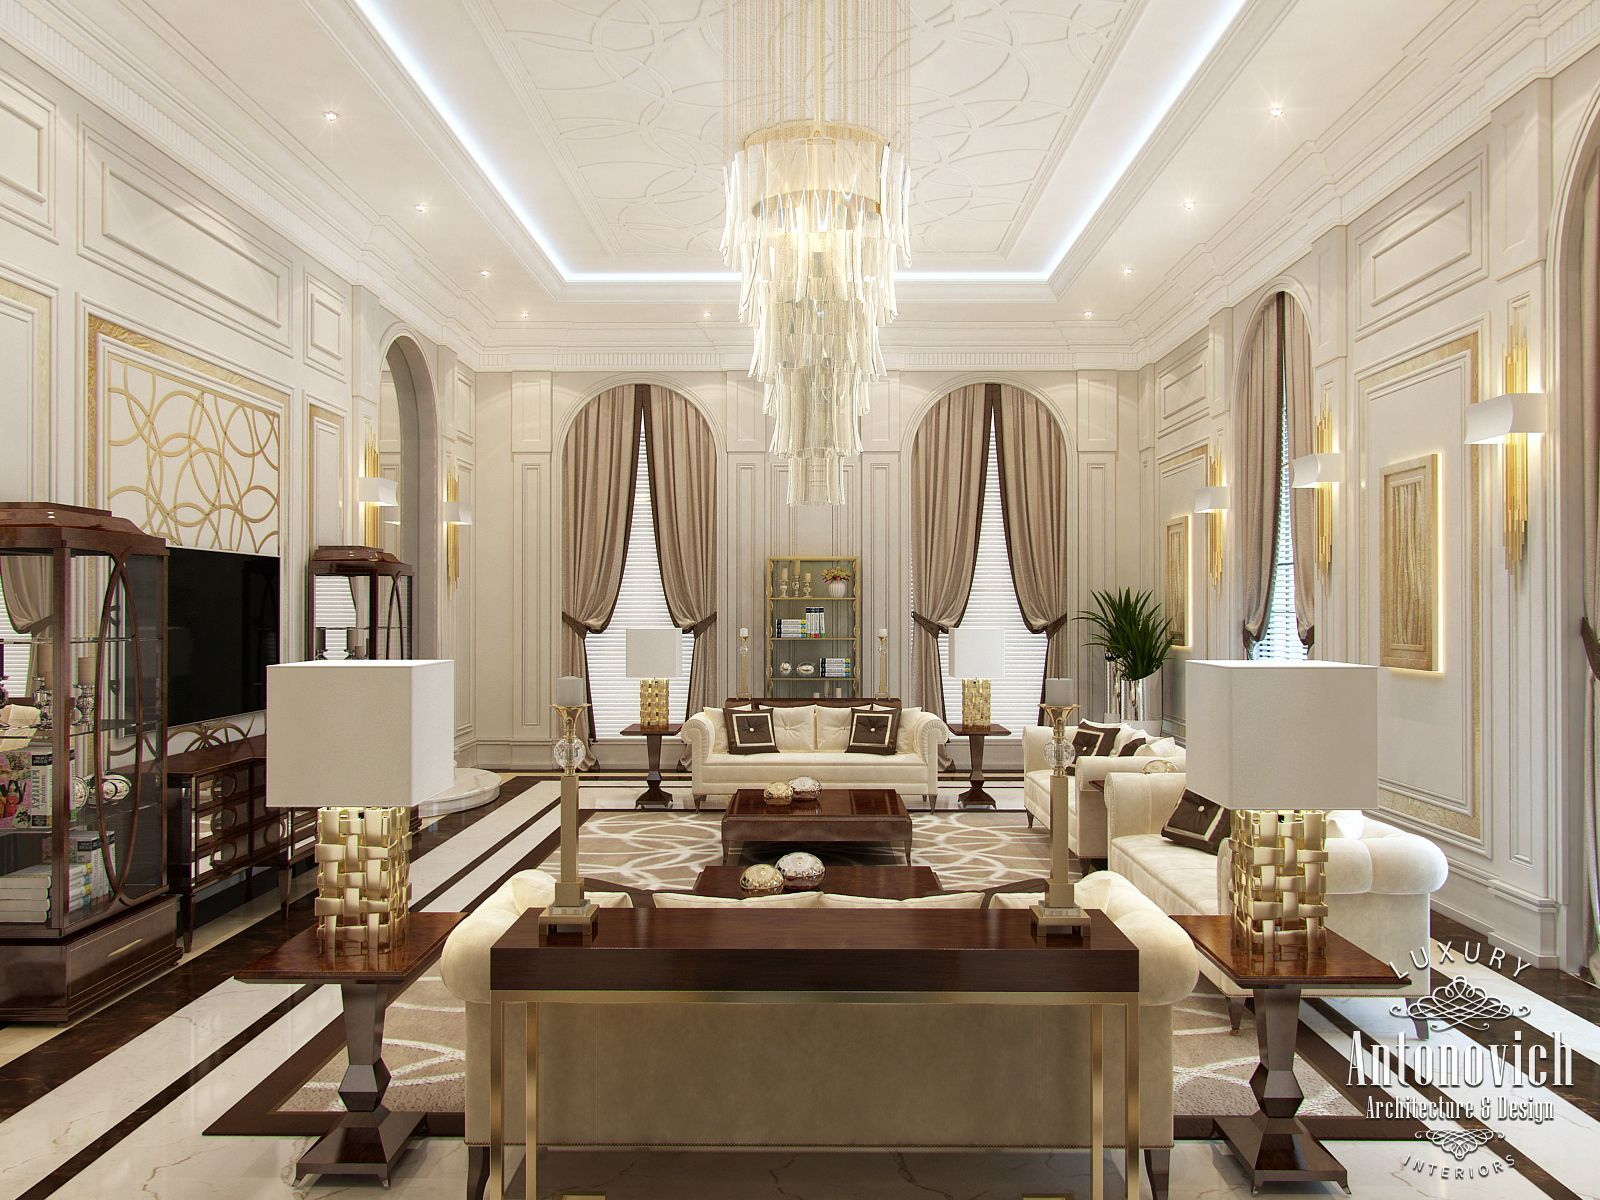 Luxurious Interior Design Interiors Classic Style Contemporary Interior Design Design Interior